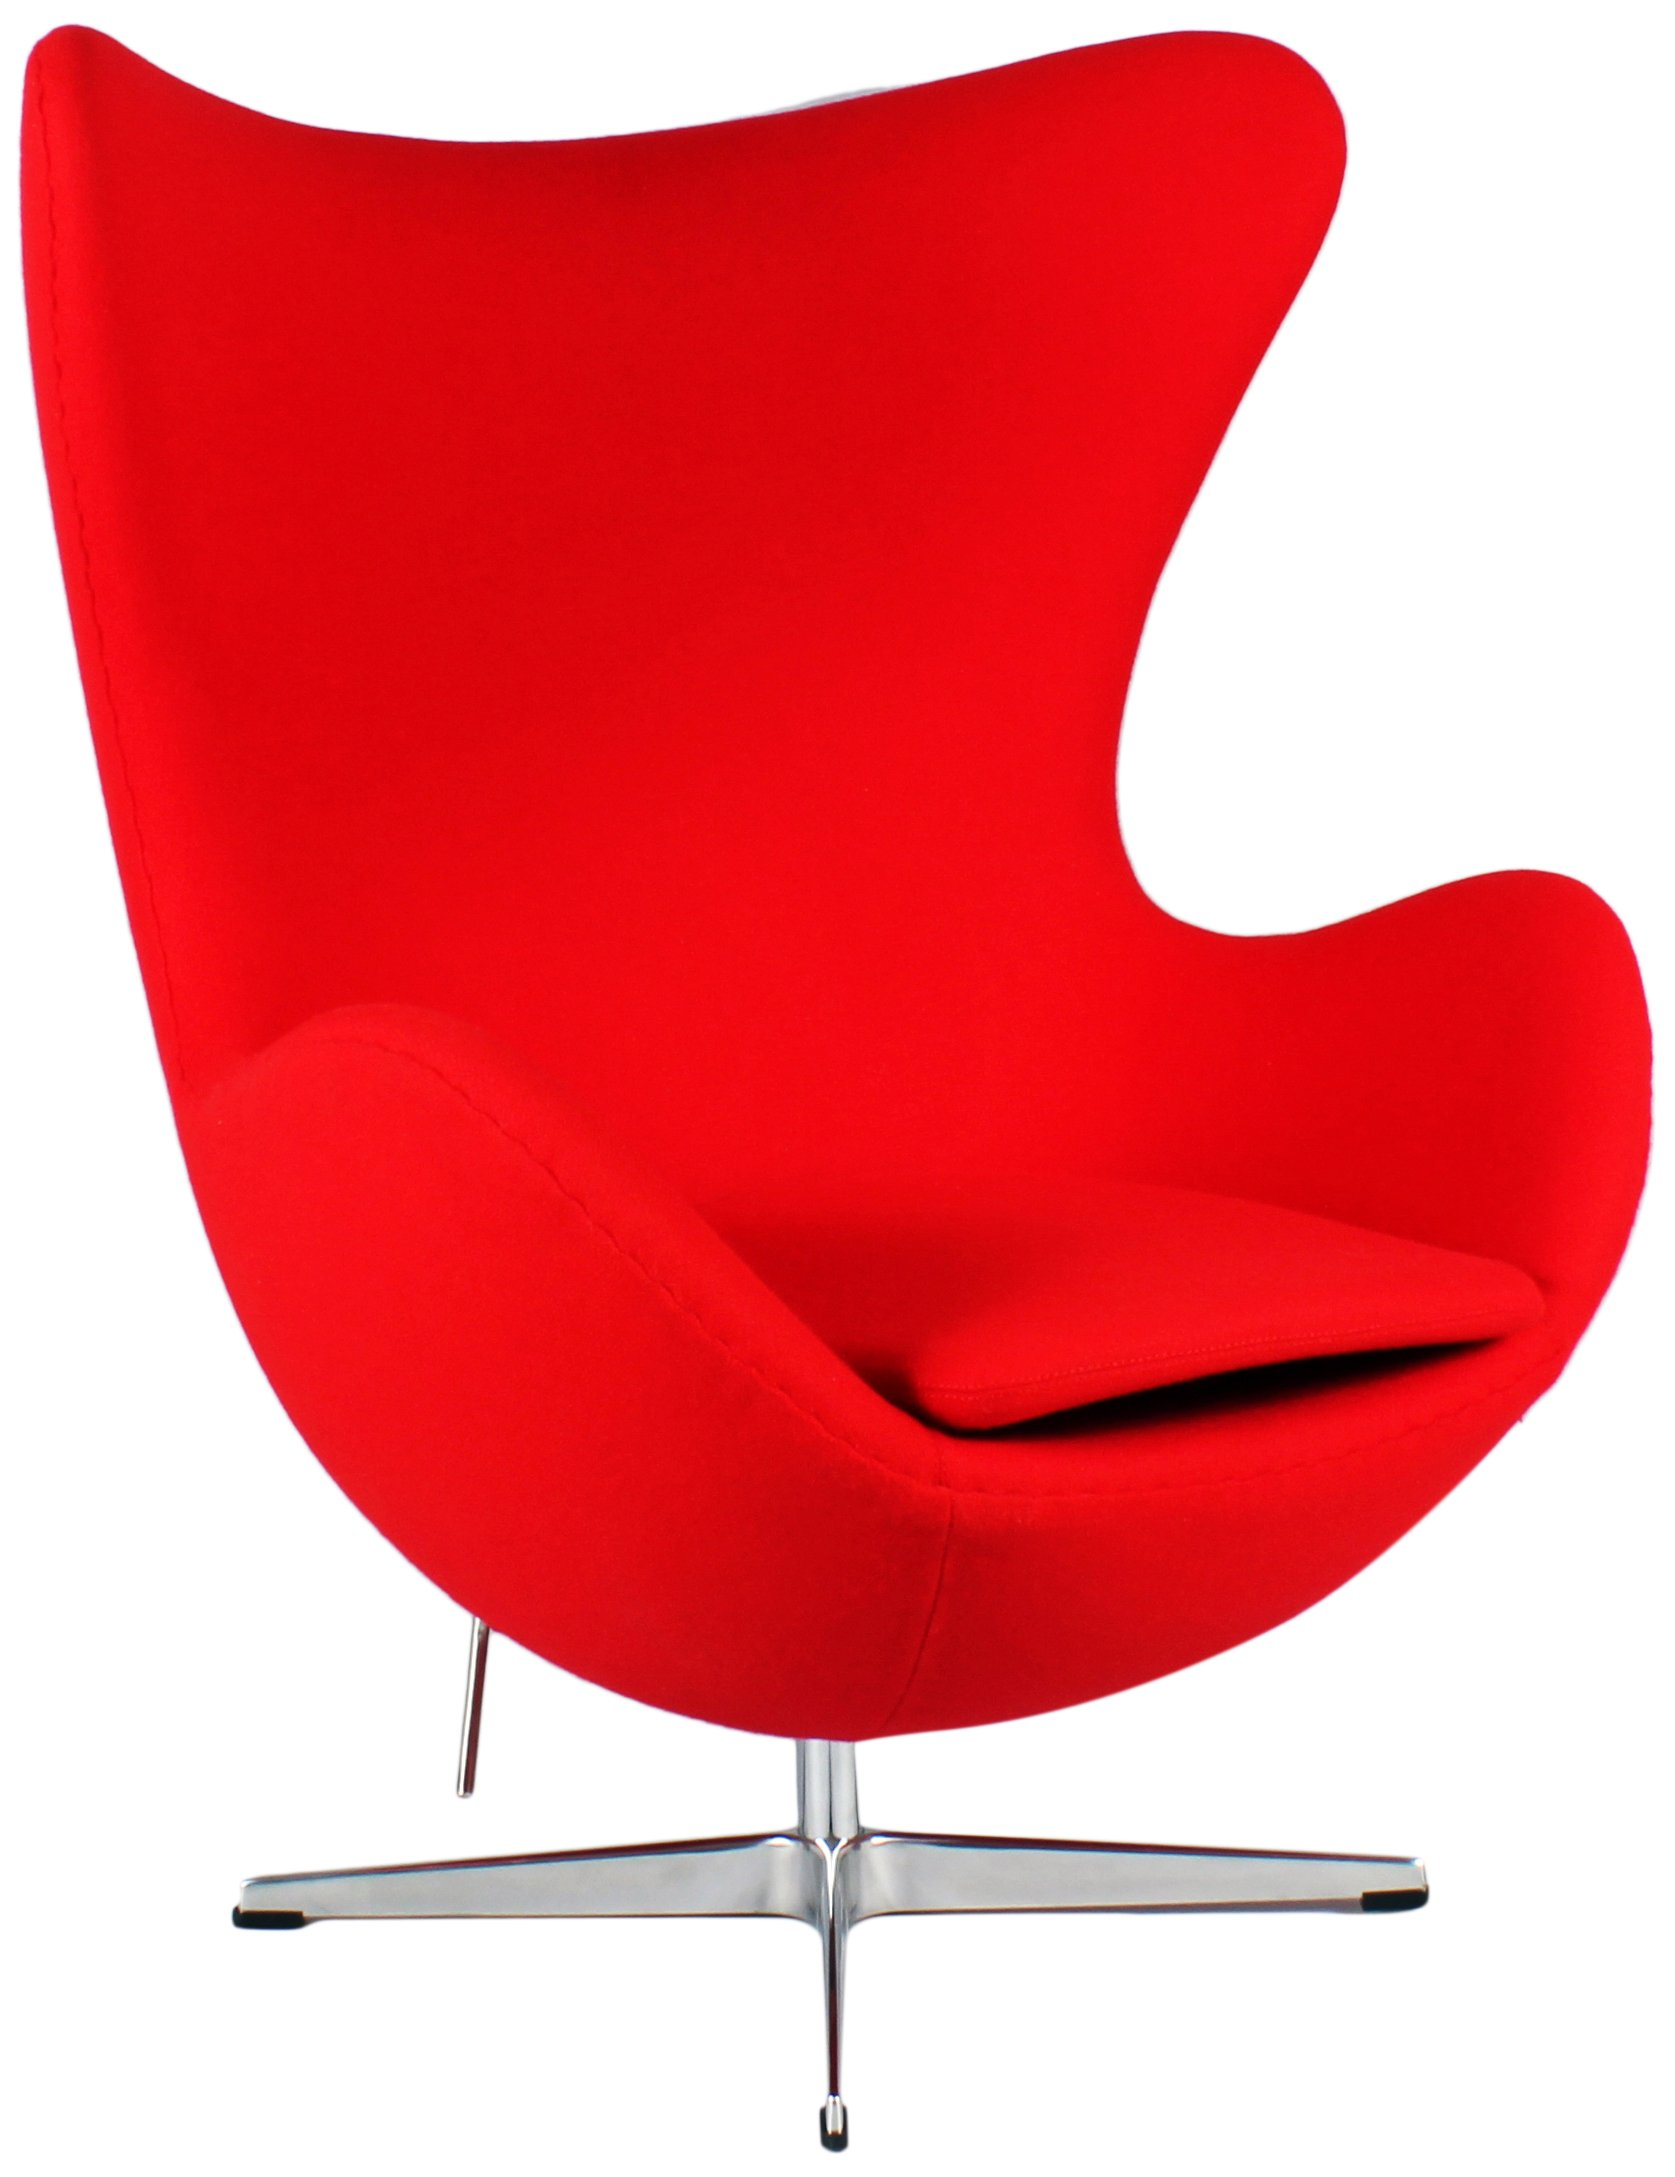 Control Brand Childrens Mid Century Side Chair with Polypropylene/Wood Eiffel Base